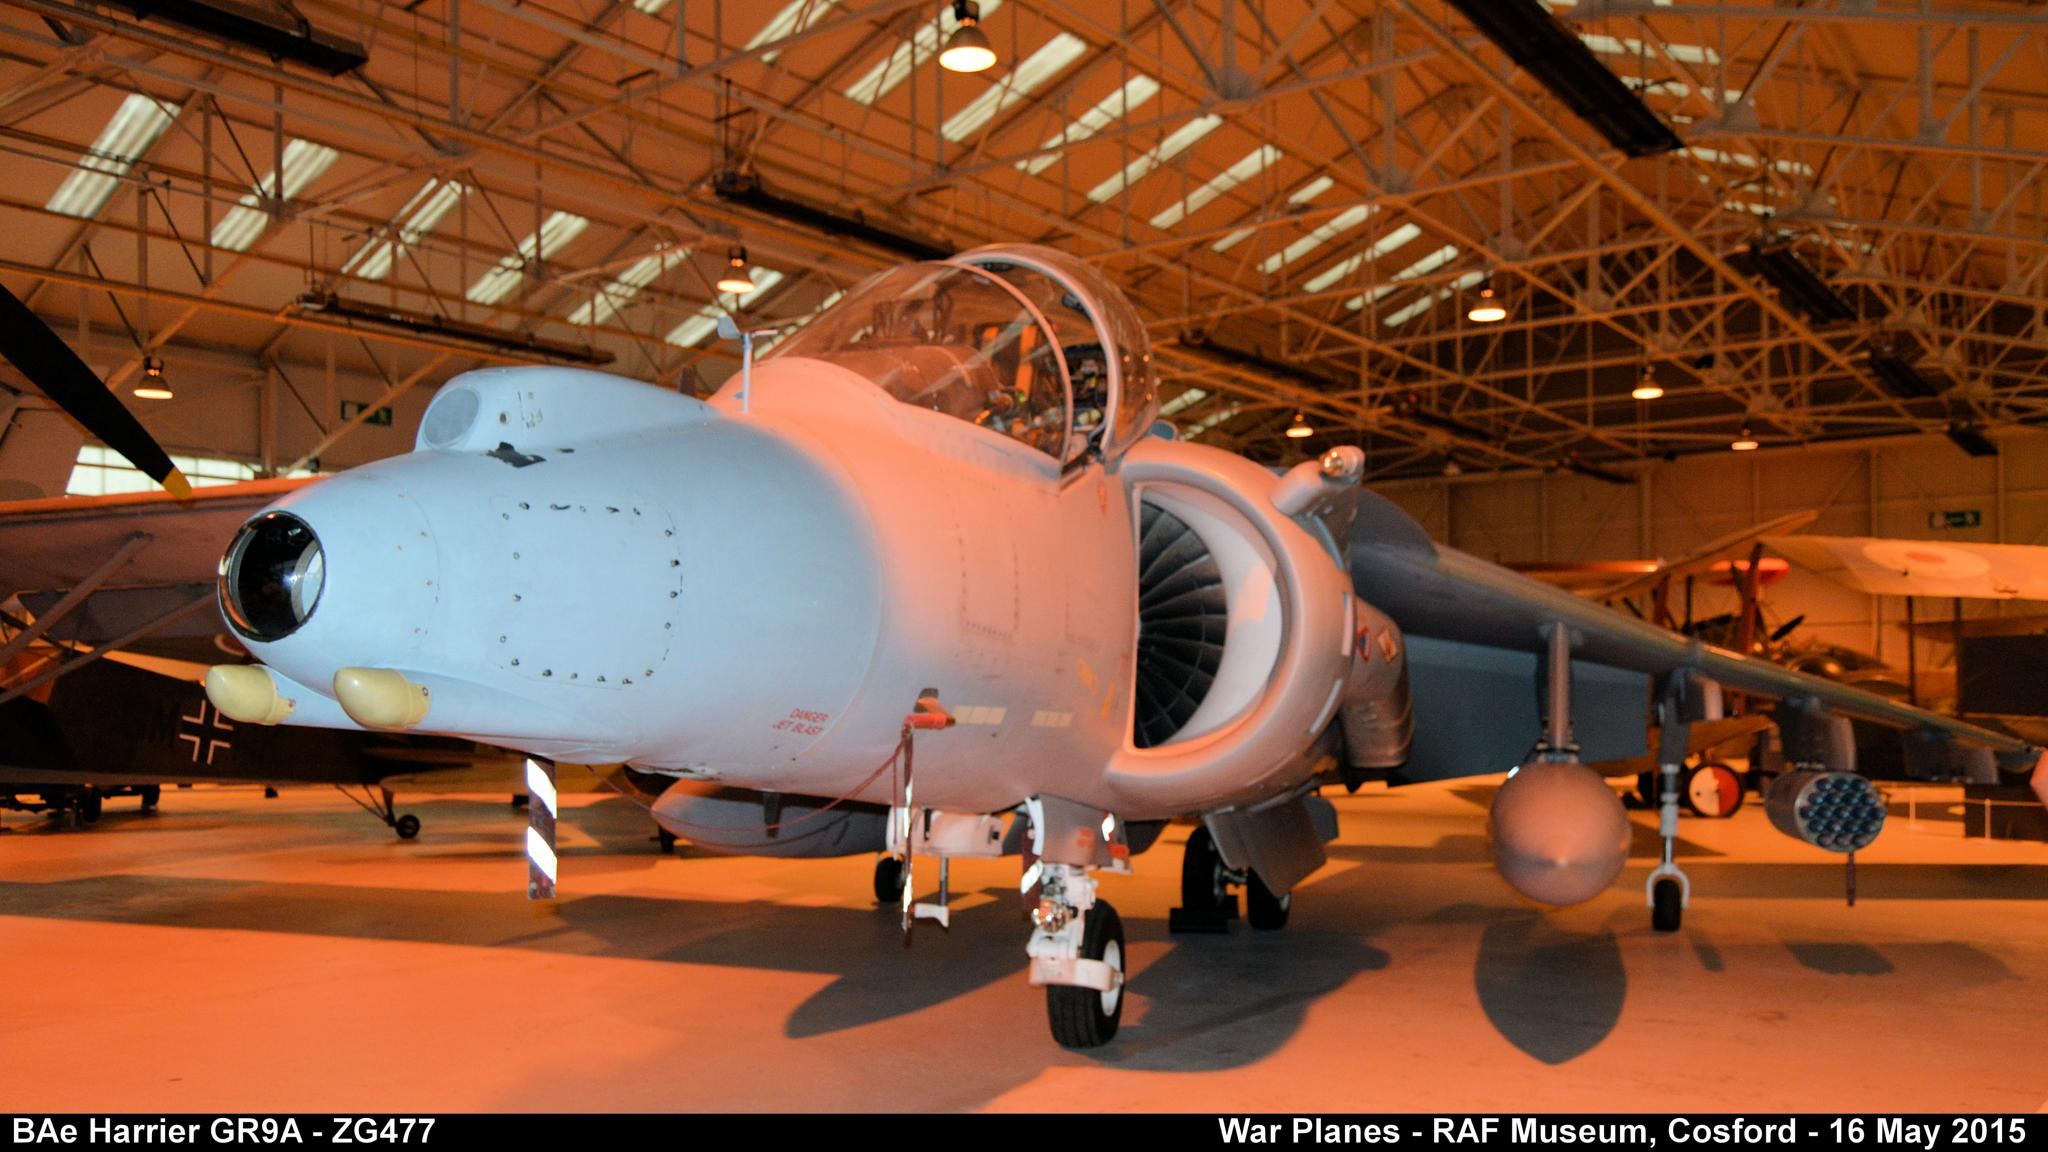 BAe Harrier GR9A - ZG477 by Graham Wood Photo Collection